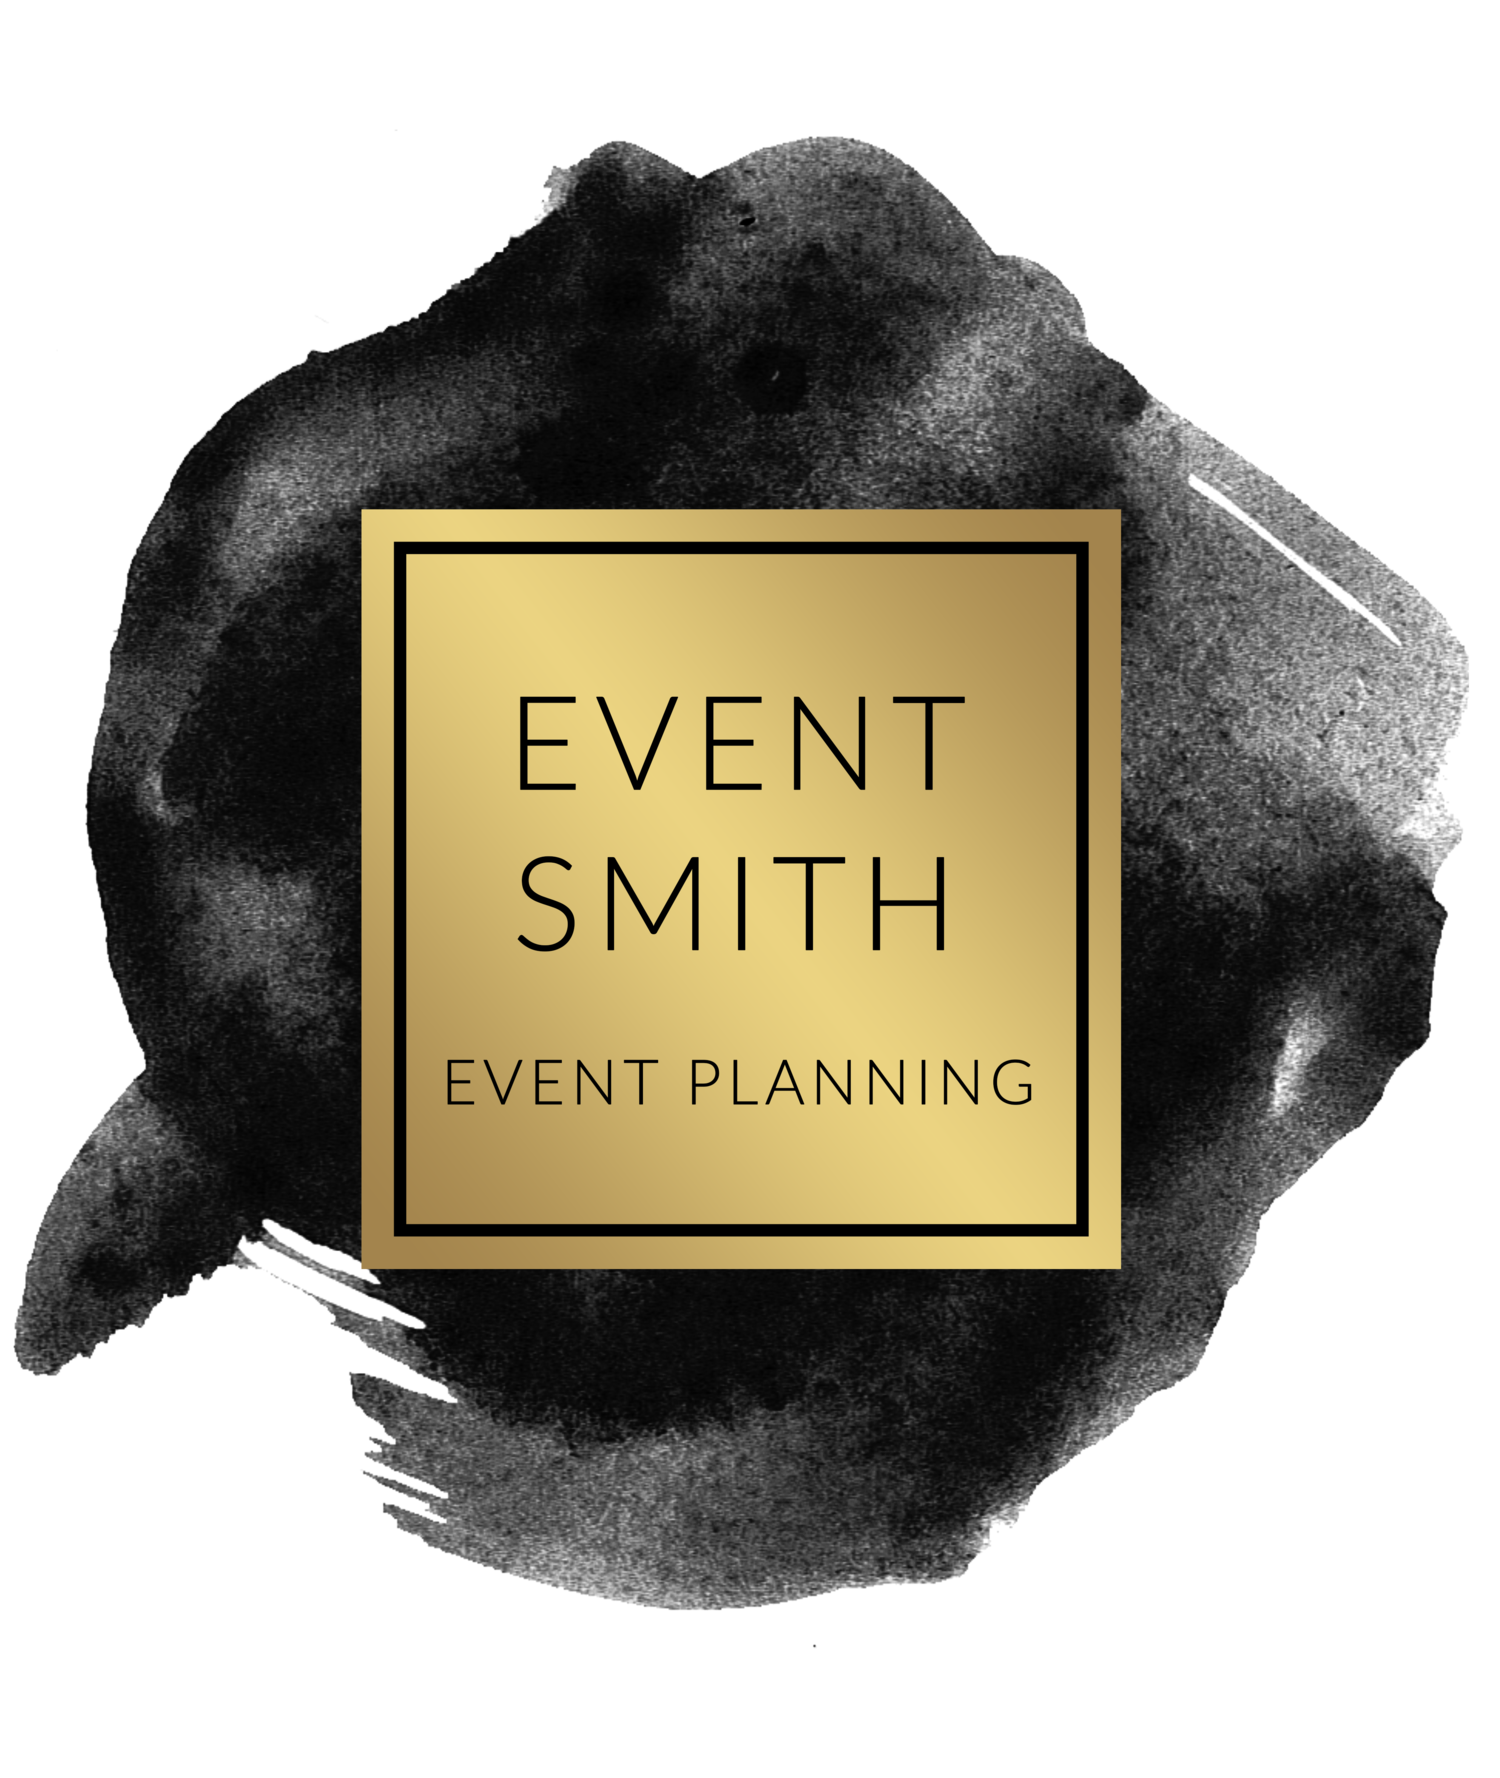 EventSmith